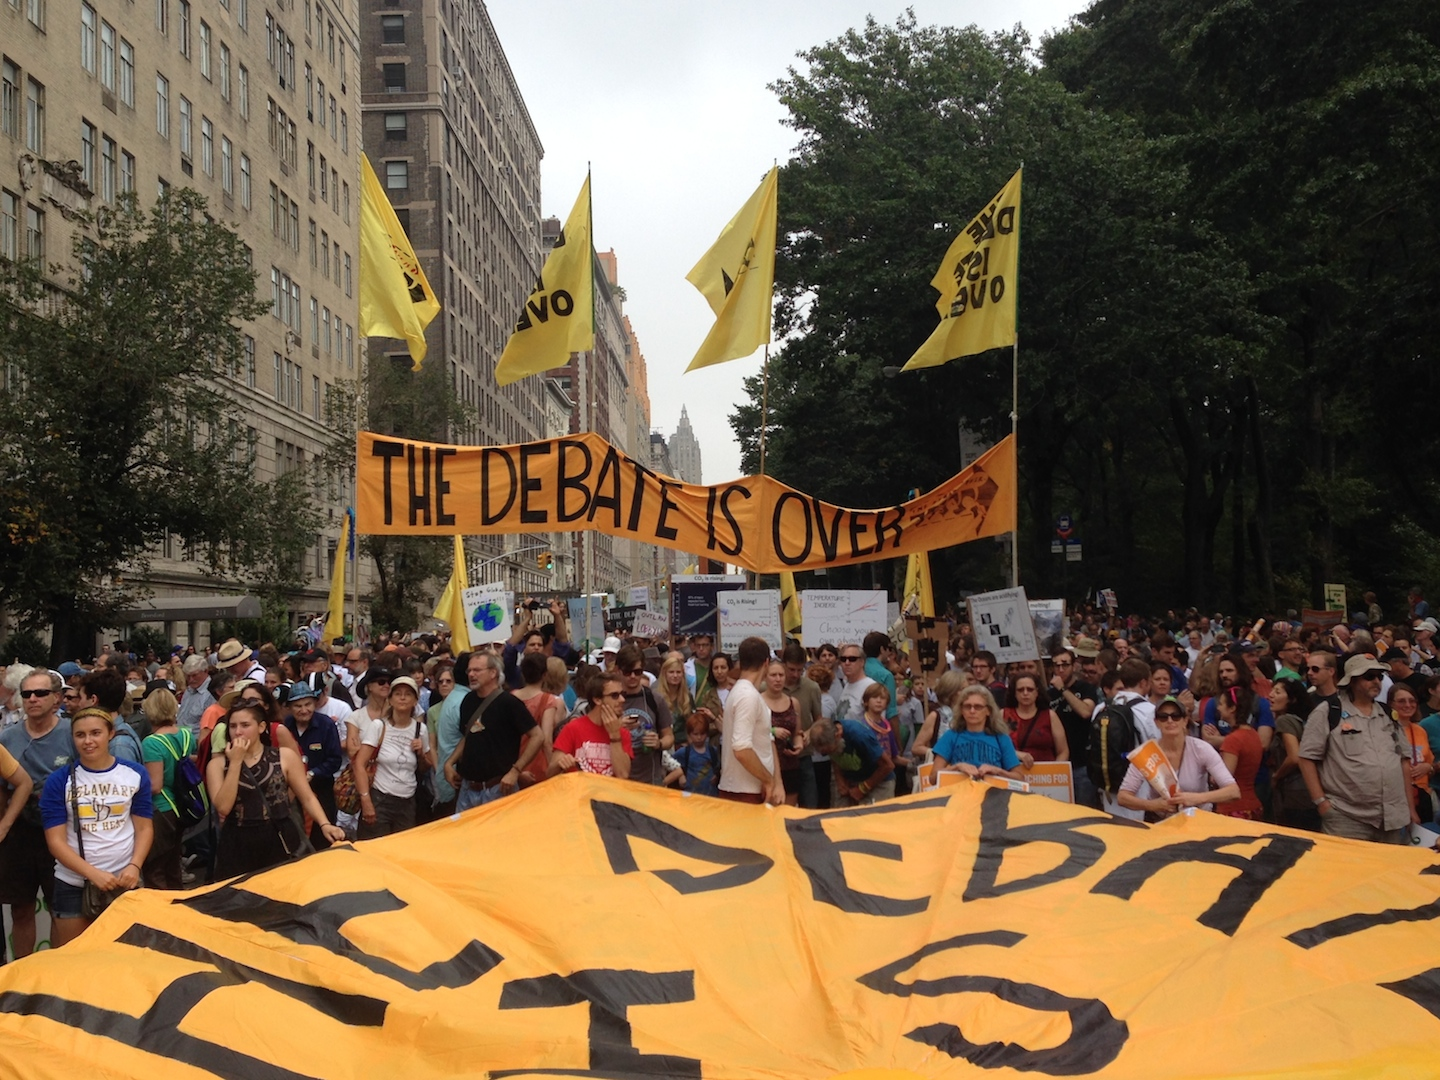 The Debate Is Over. Scientists at the People's Climate March.